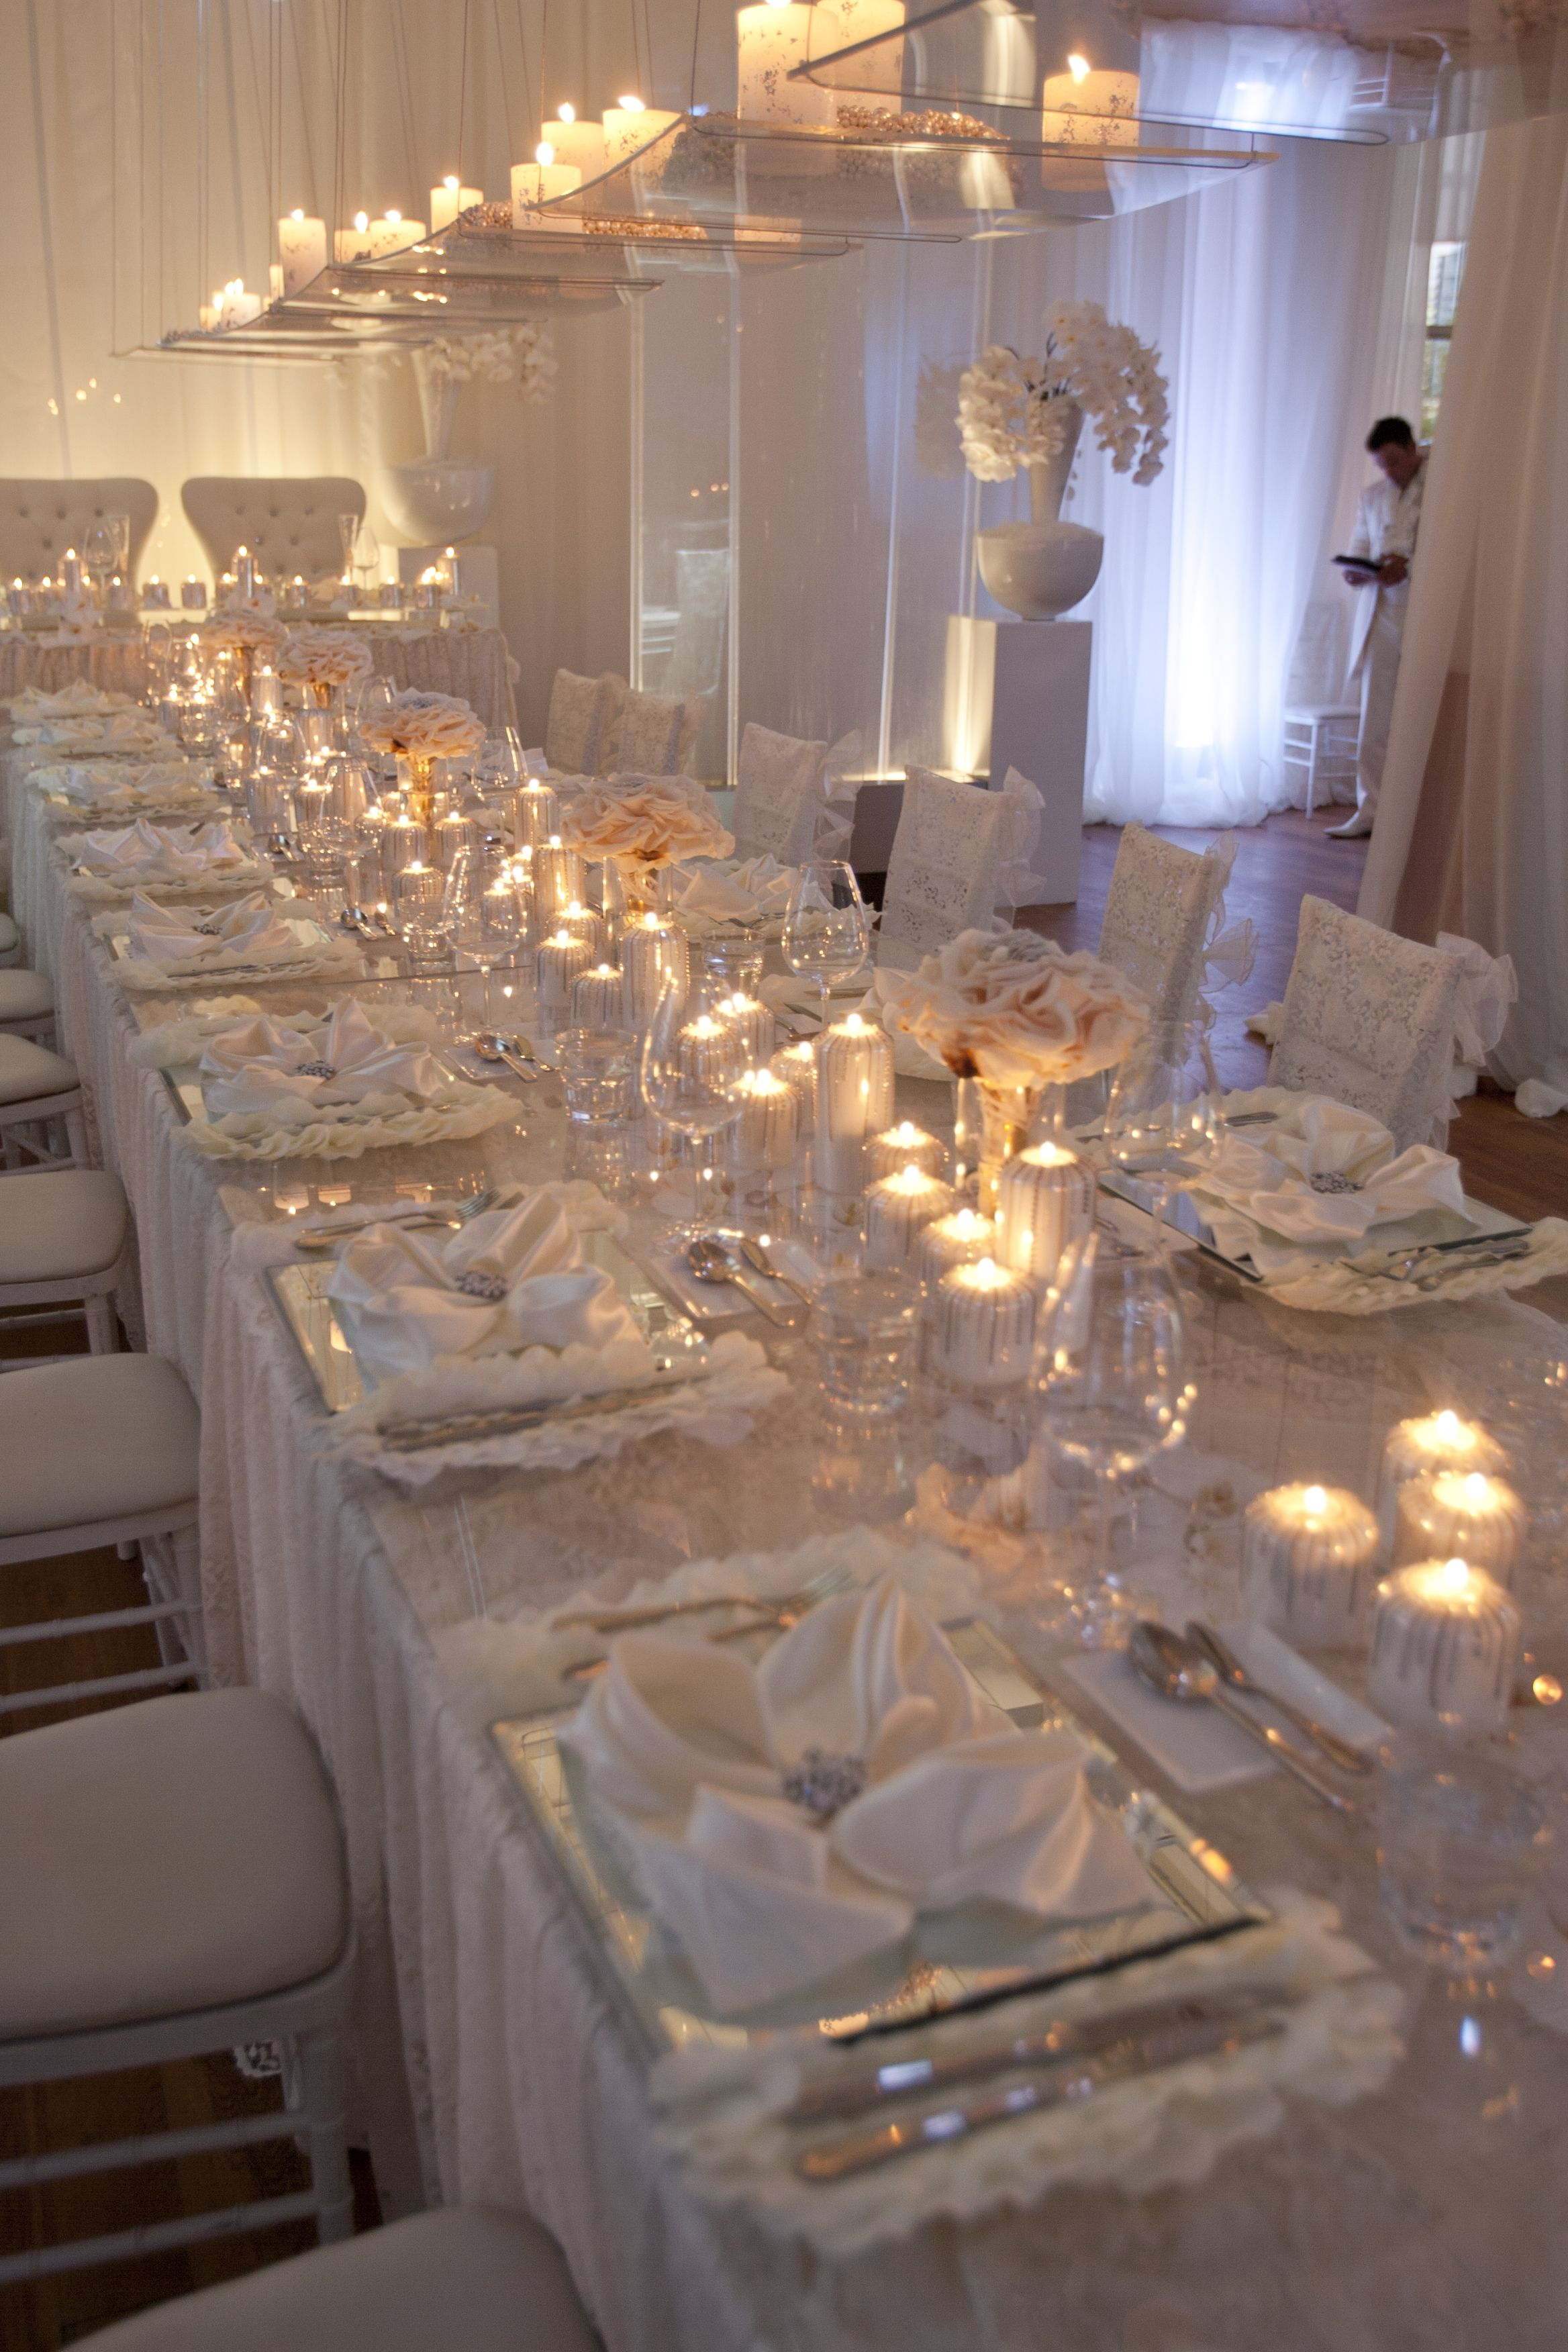 Head table filled with flowers candles lace linens and